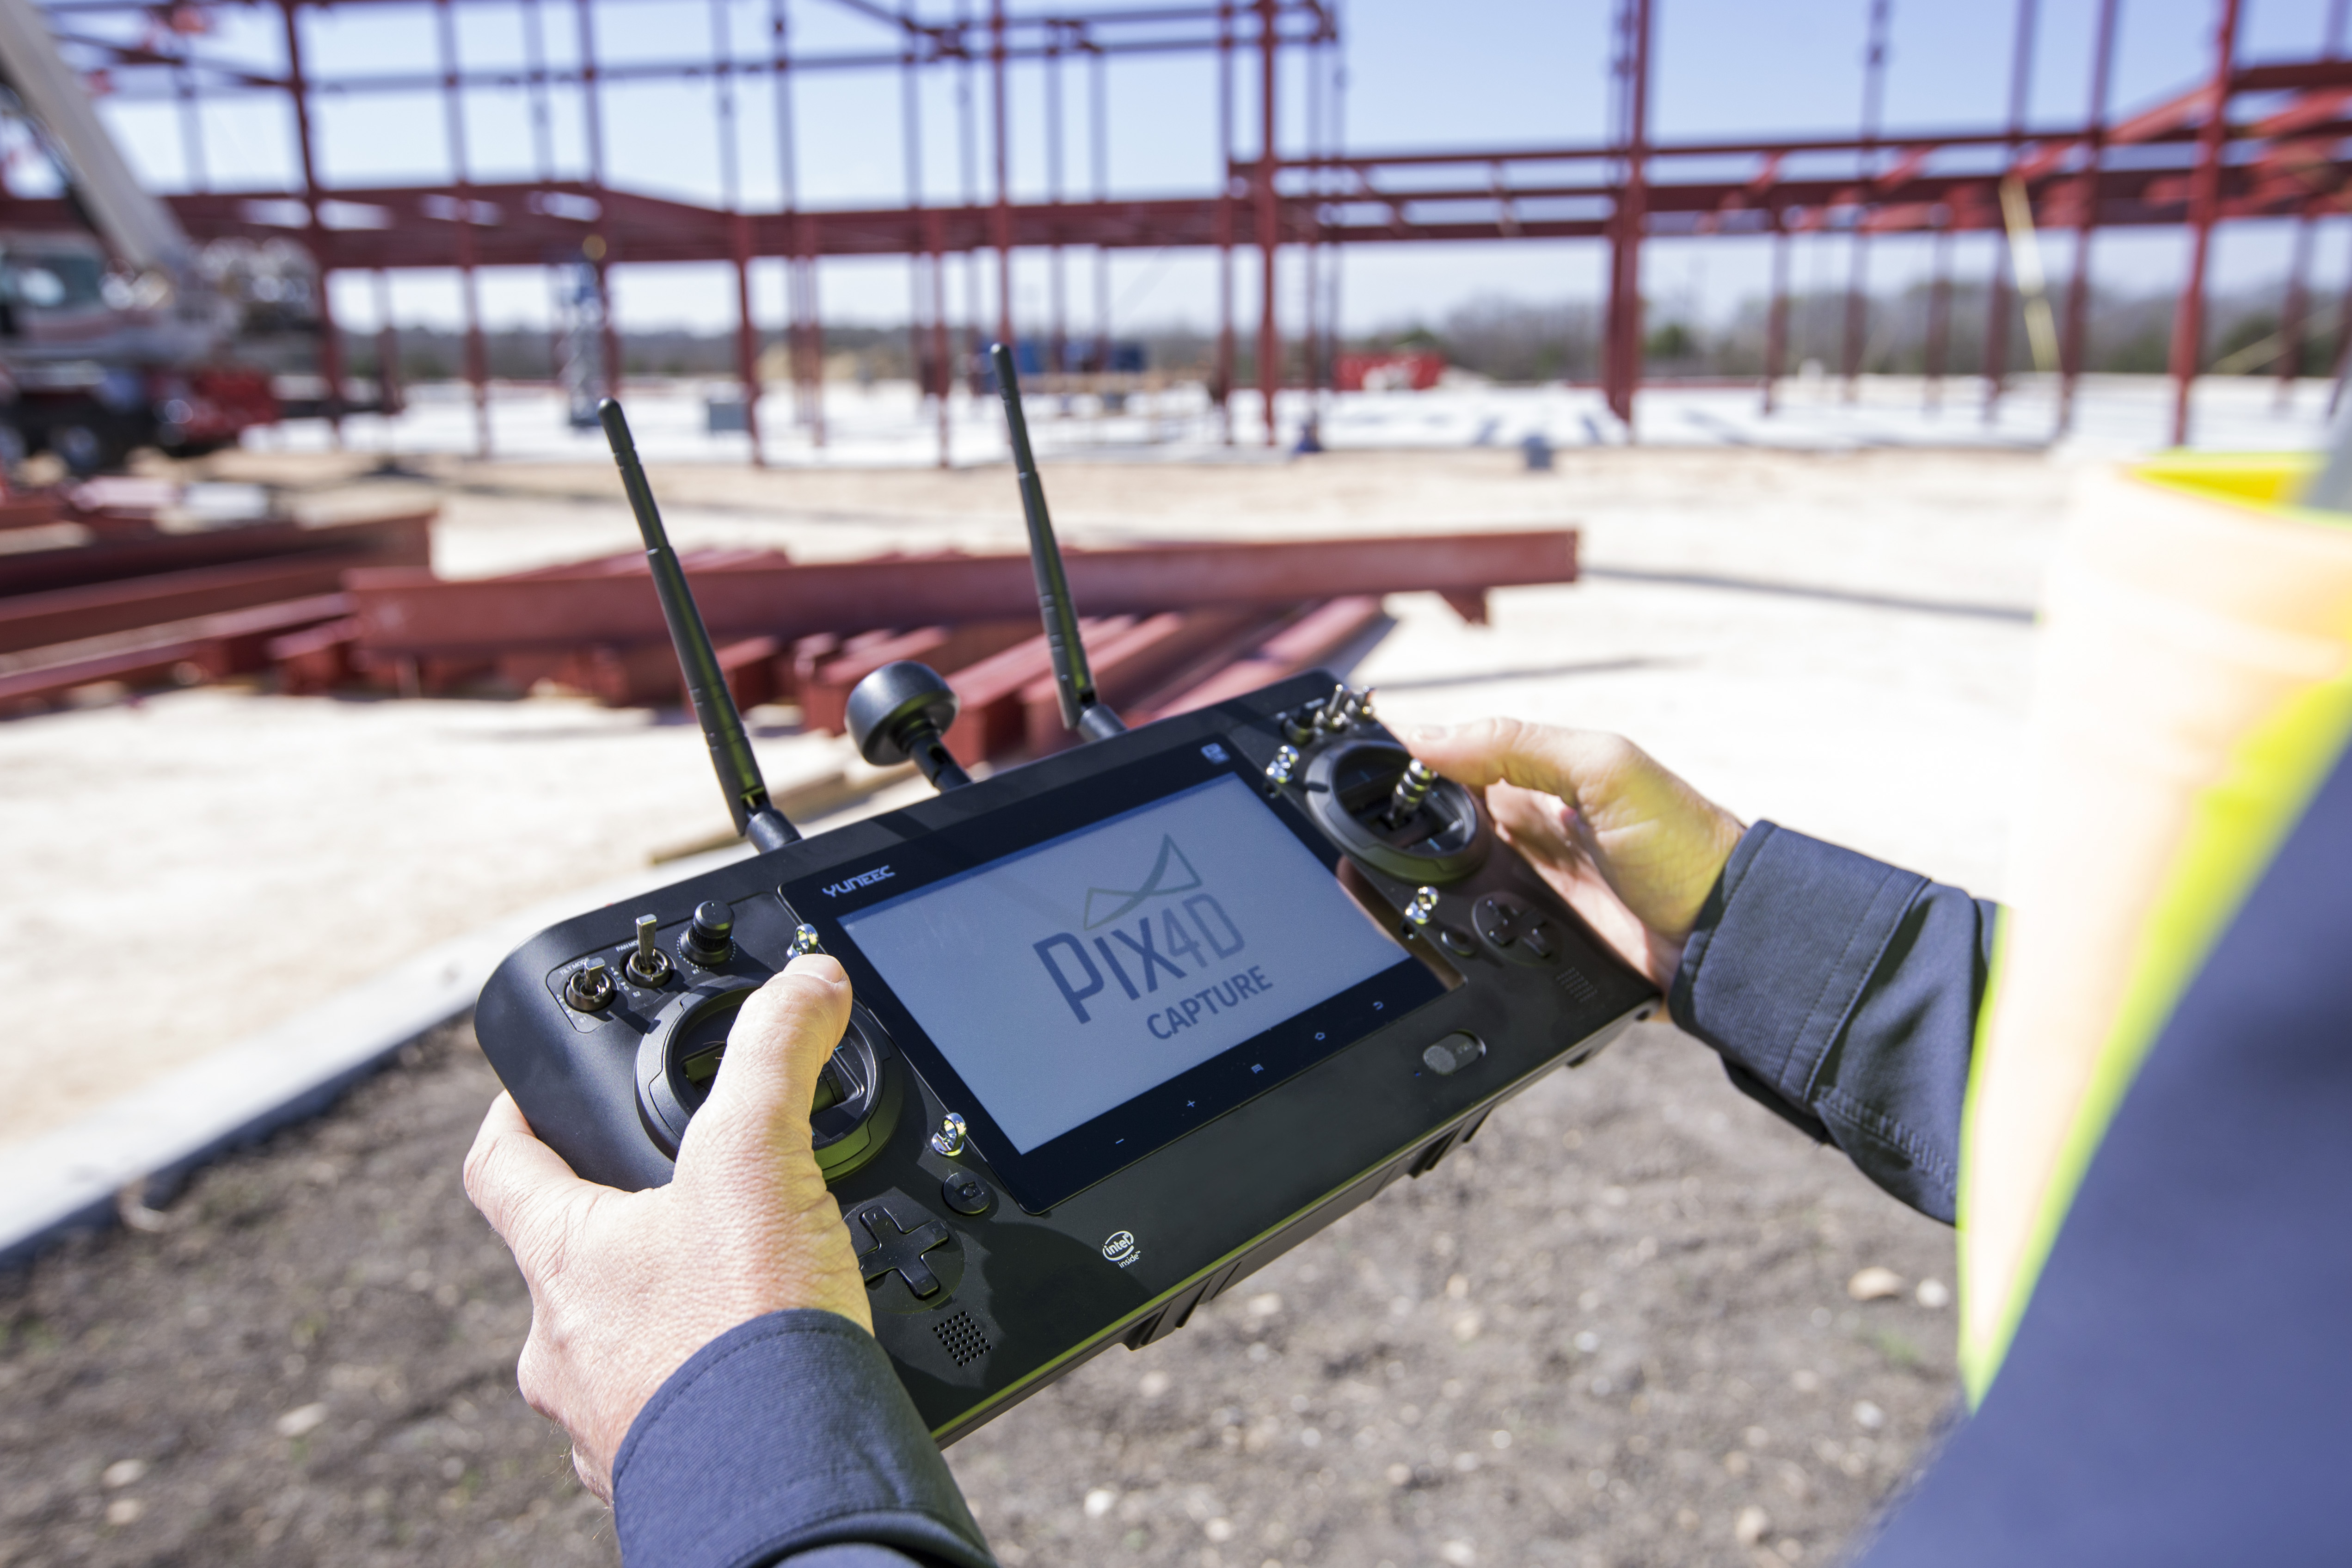 Yuneec partners with Parrot to put Pix4D's mapping software in its commercial drones